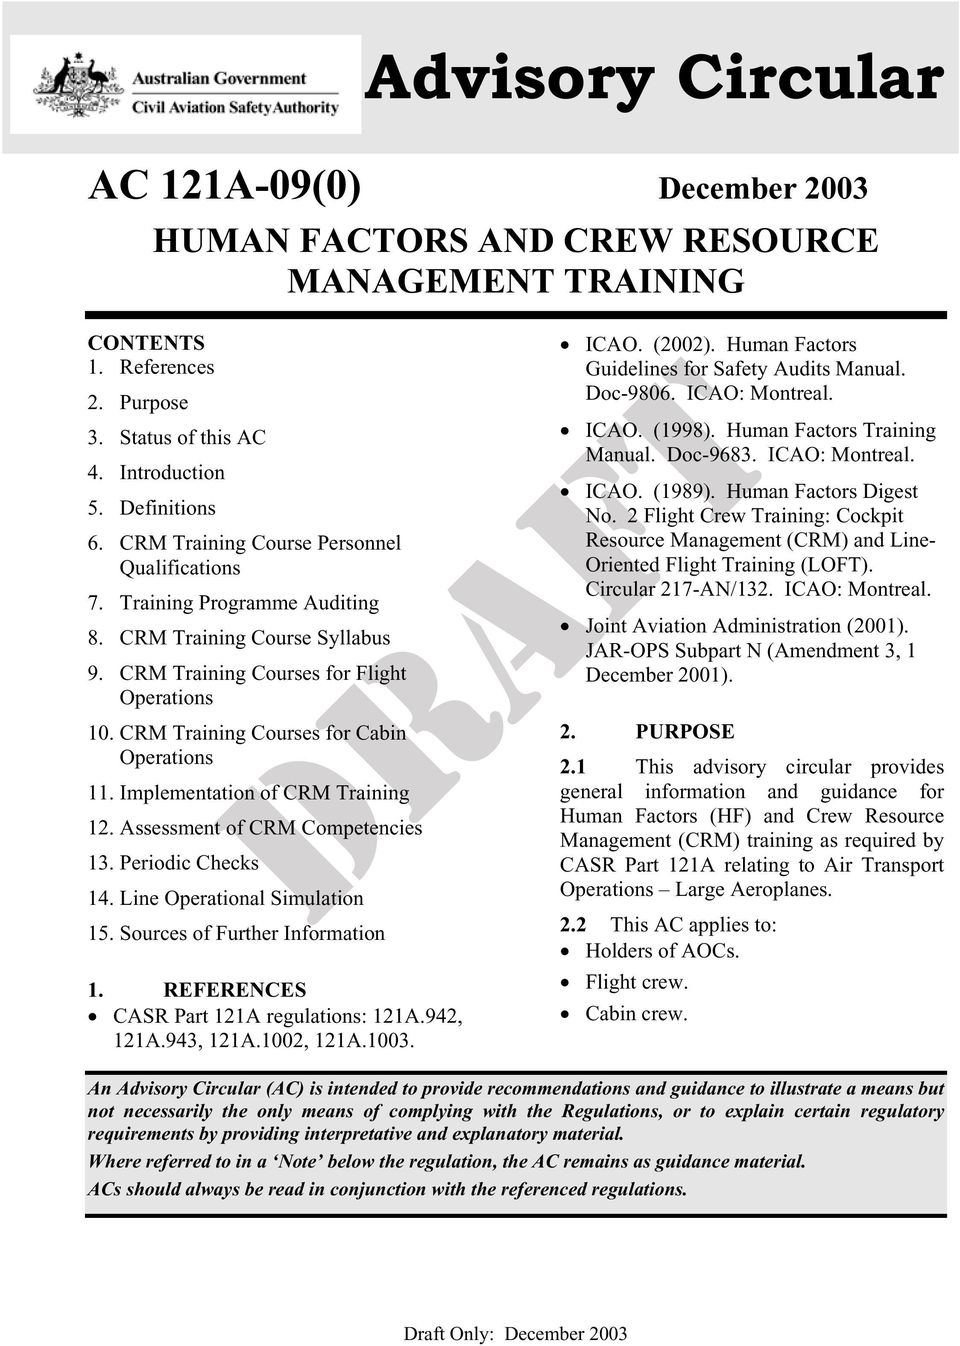 CRM Training Courses for Cabin Operations 11. Implementation of CRM Training  12. Assessment of